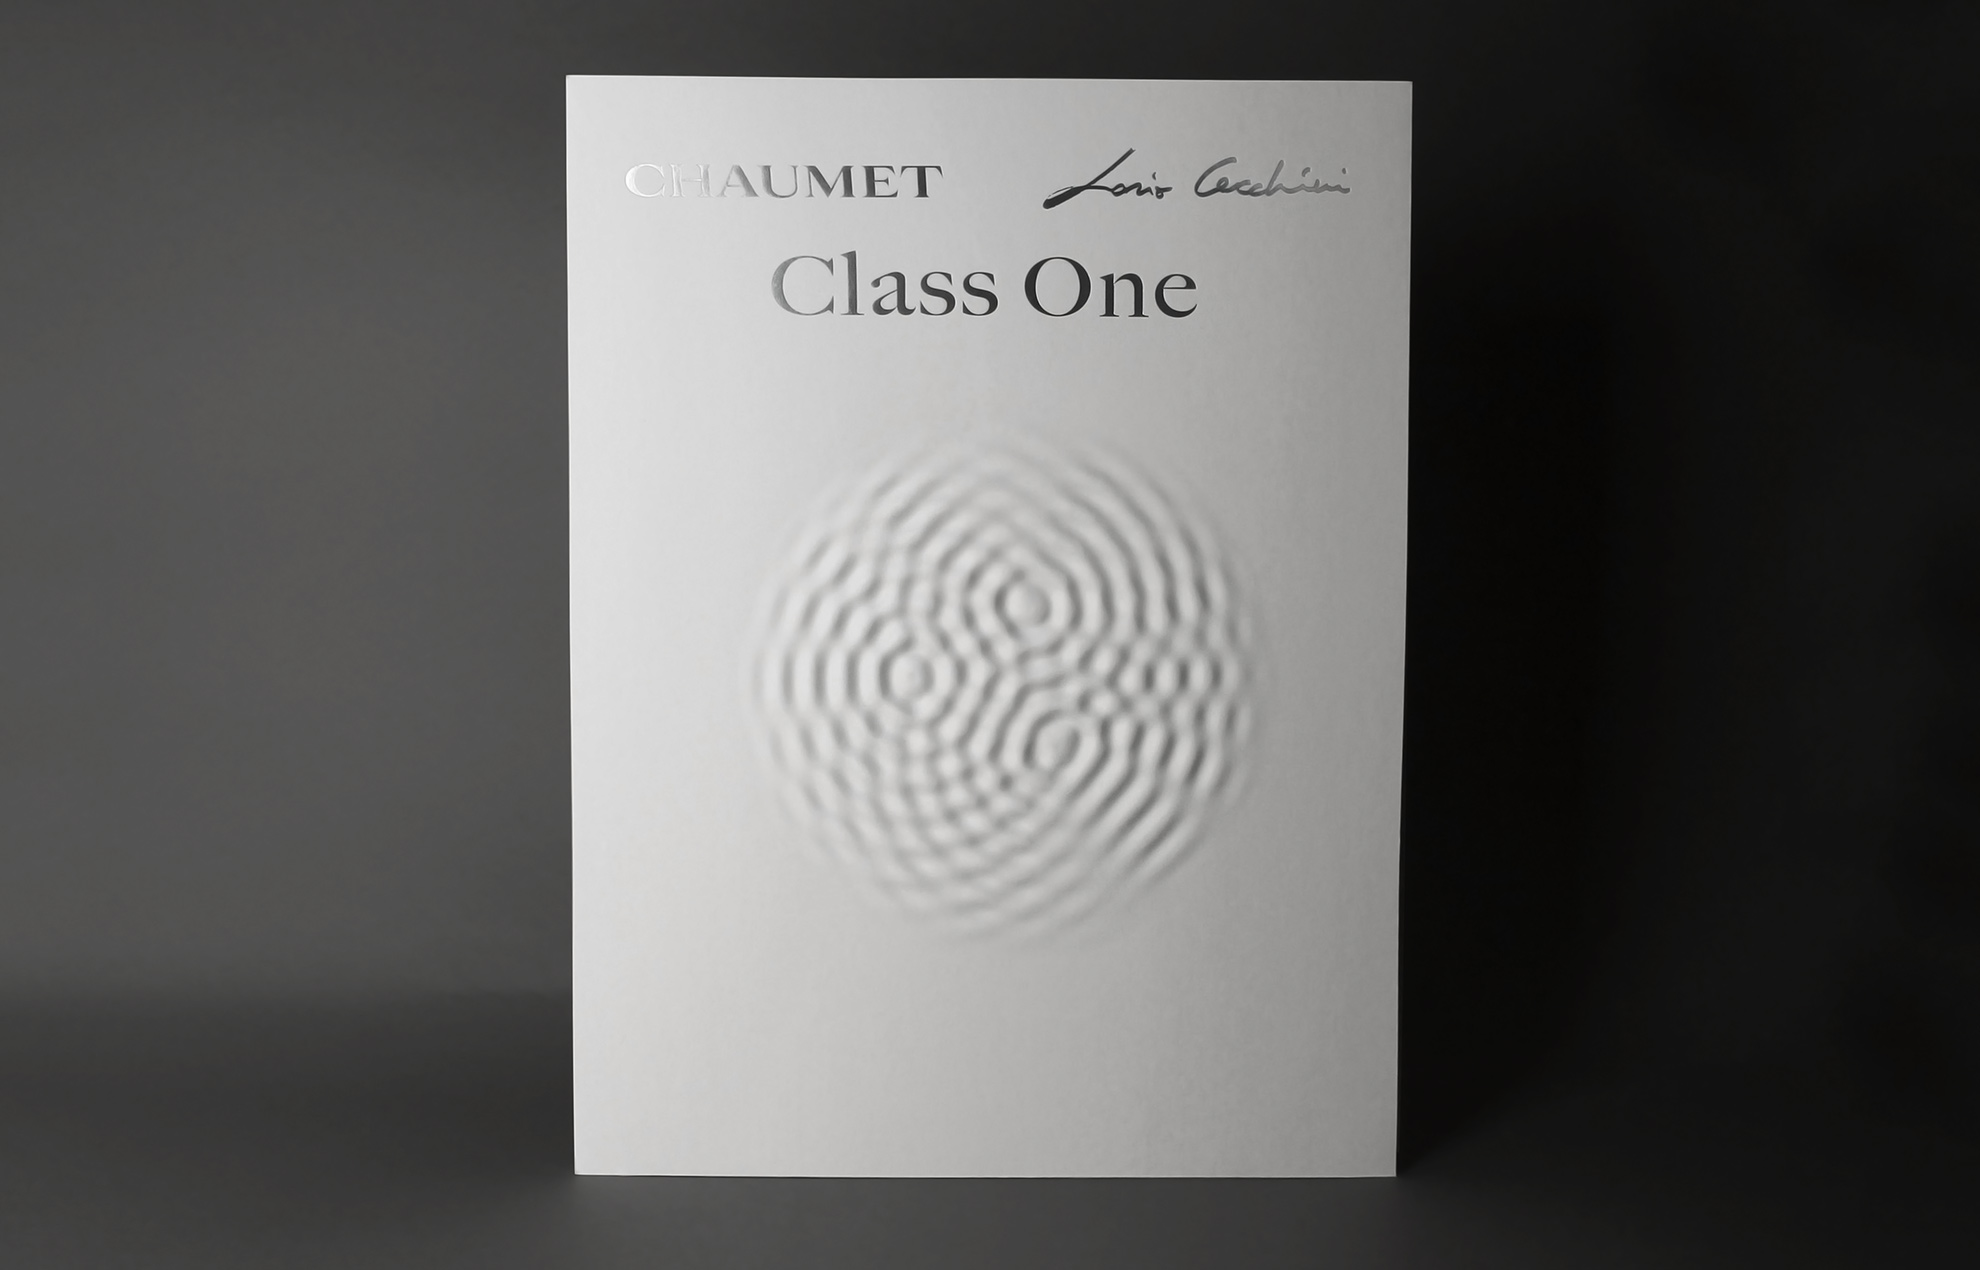 Class One - Chaumet